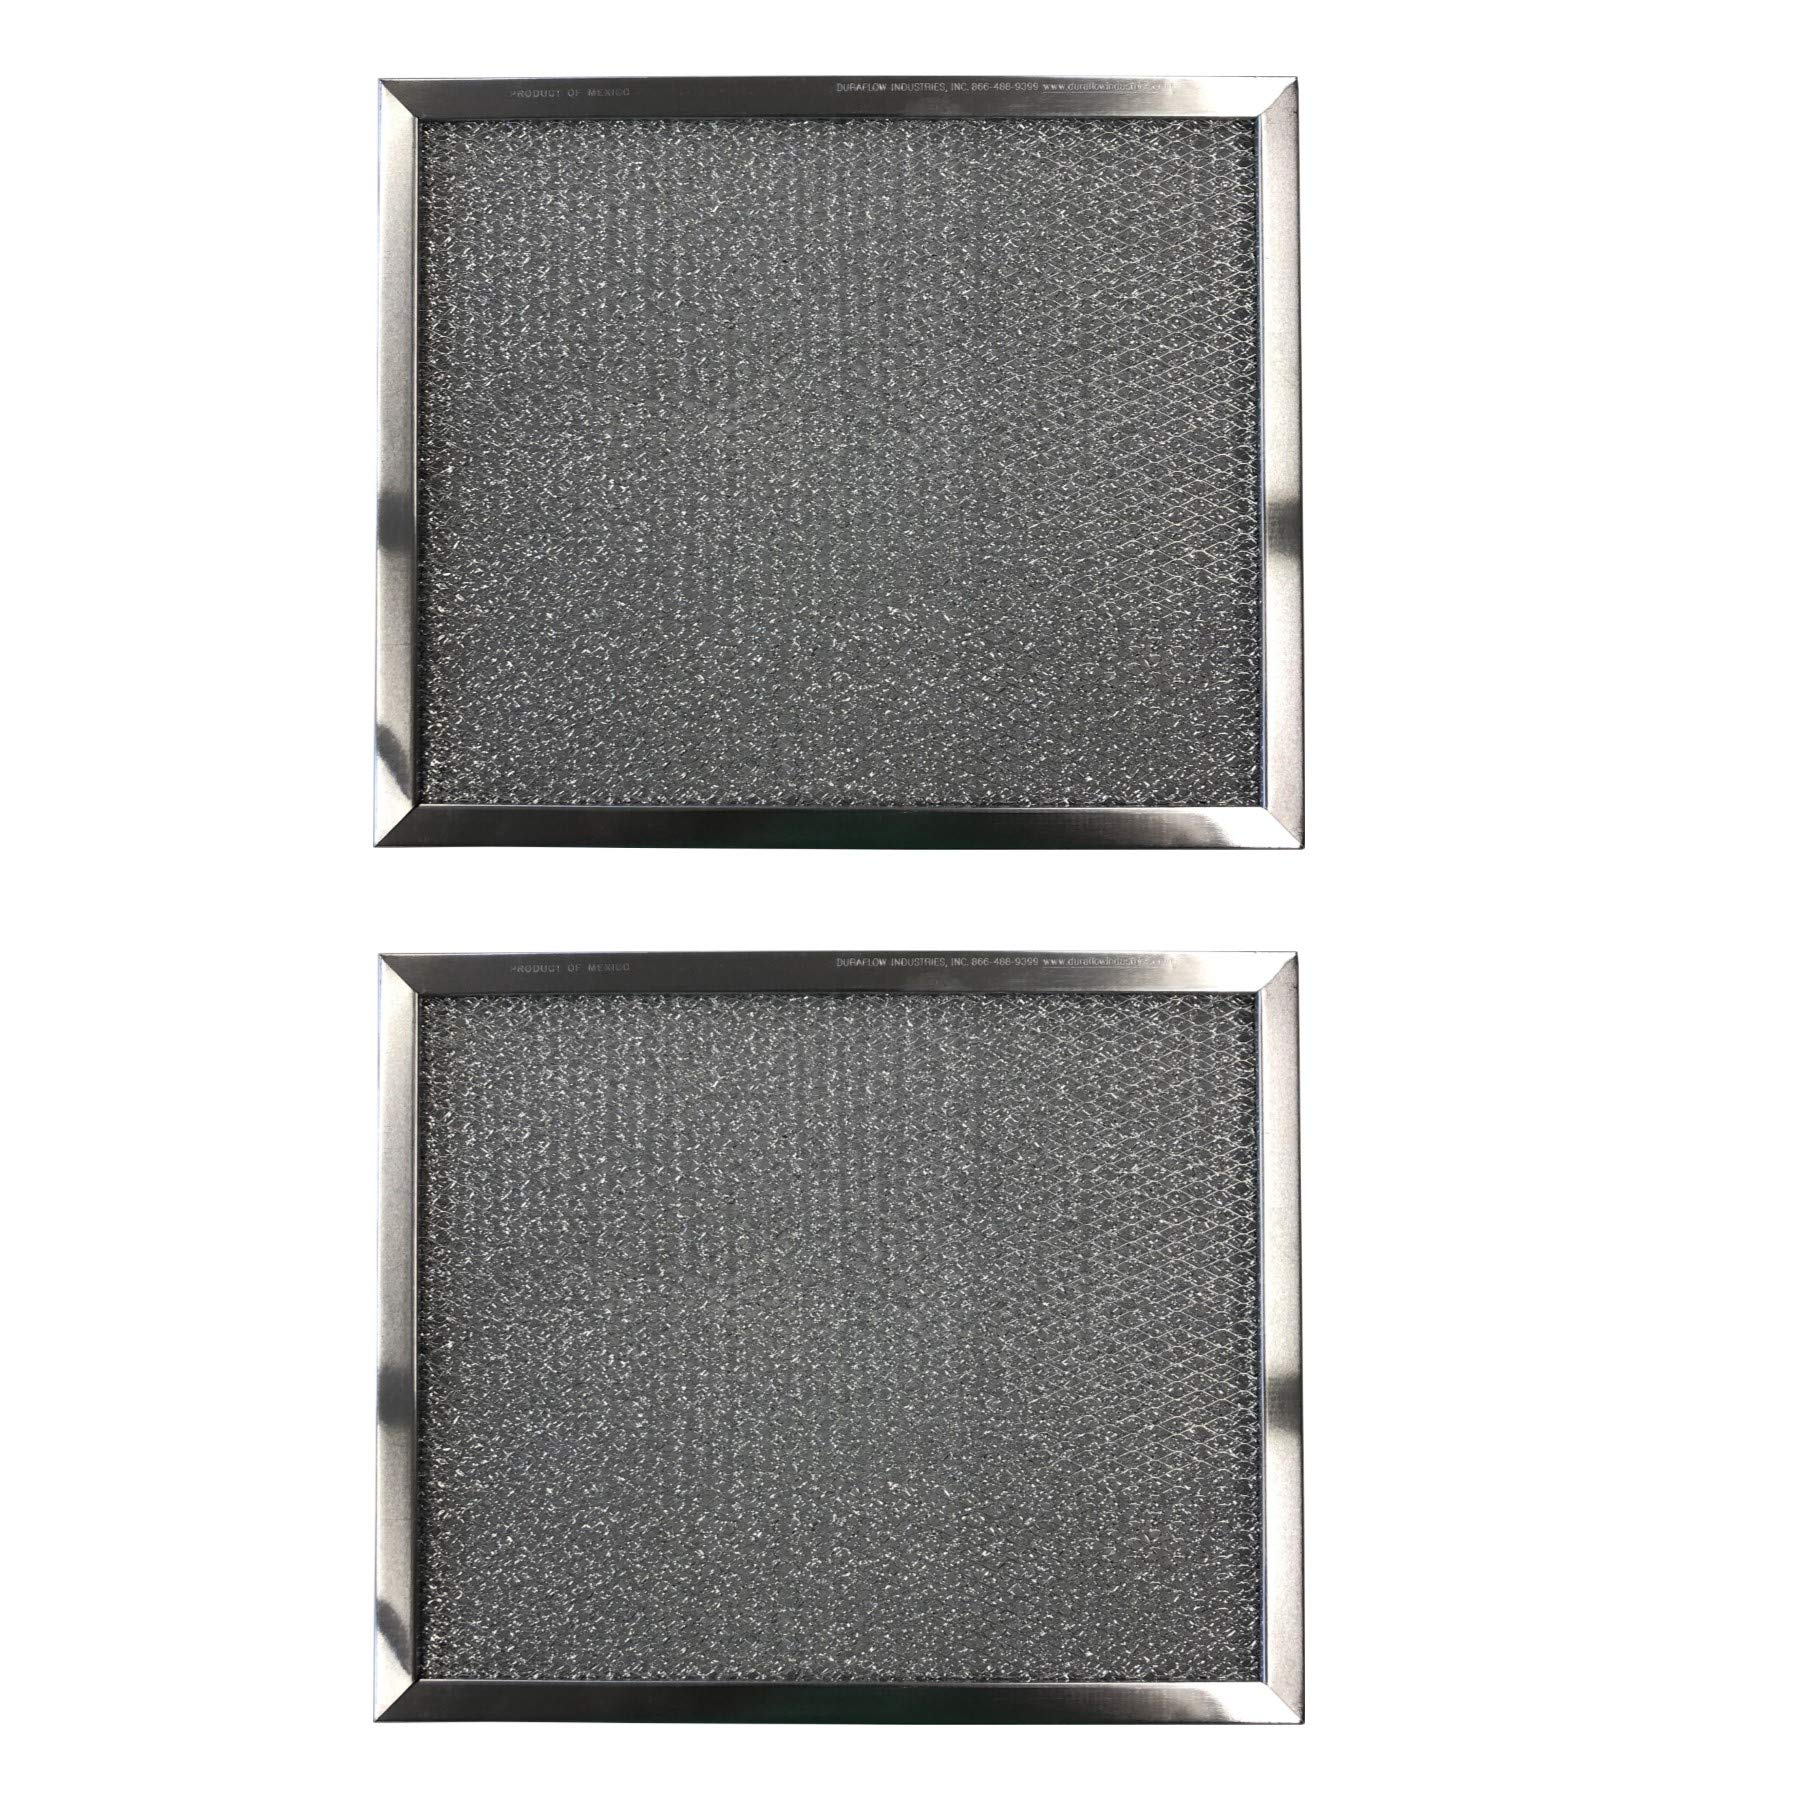 Replacement Aluminum Filters Compatible with Broan 97008729, Broan 99010037,G 8536,RHF1014  10 1/2 X